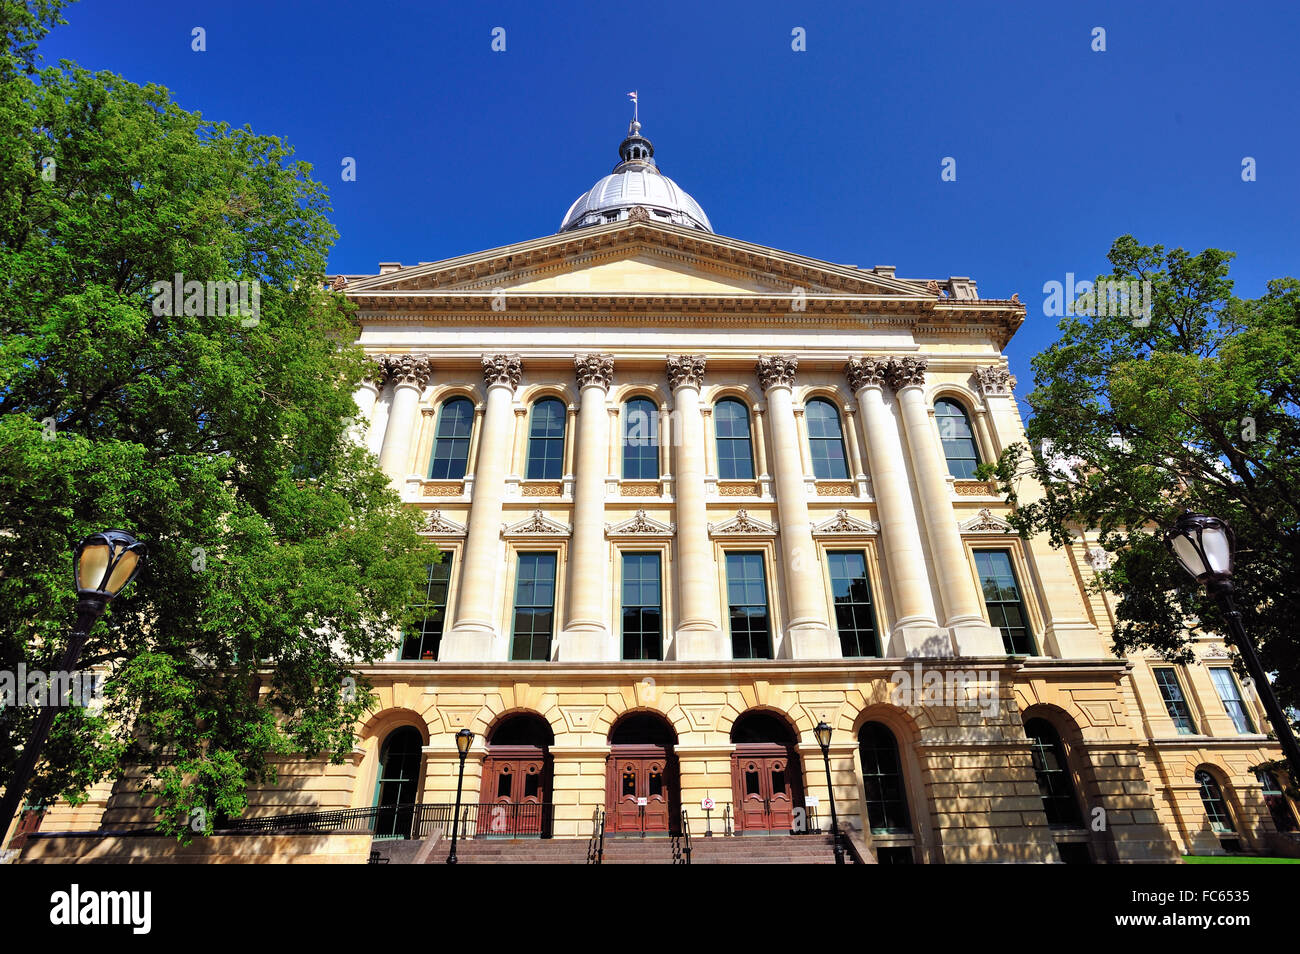 The State Capitol Building in Springfield, Illinois. The capitol is in the French Renaissance architectural style. - Stock Image